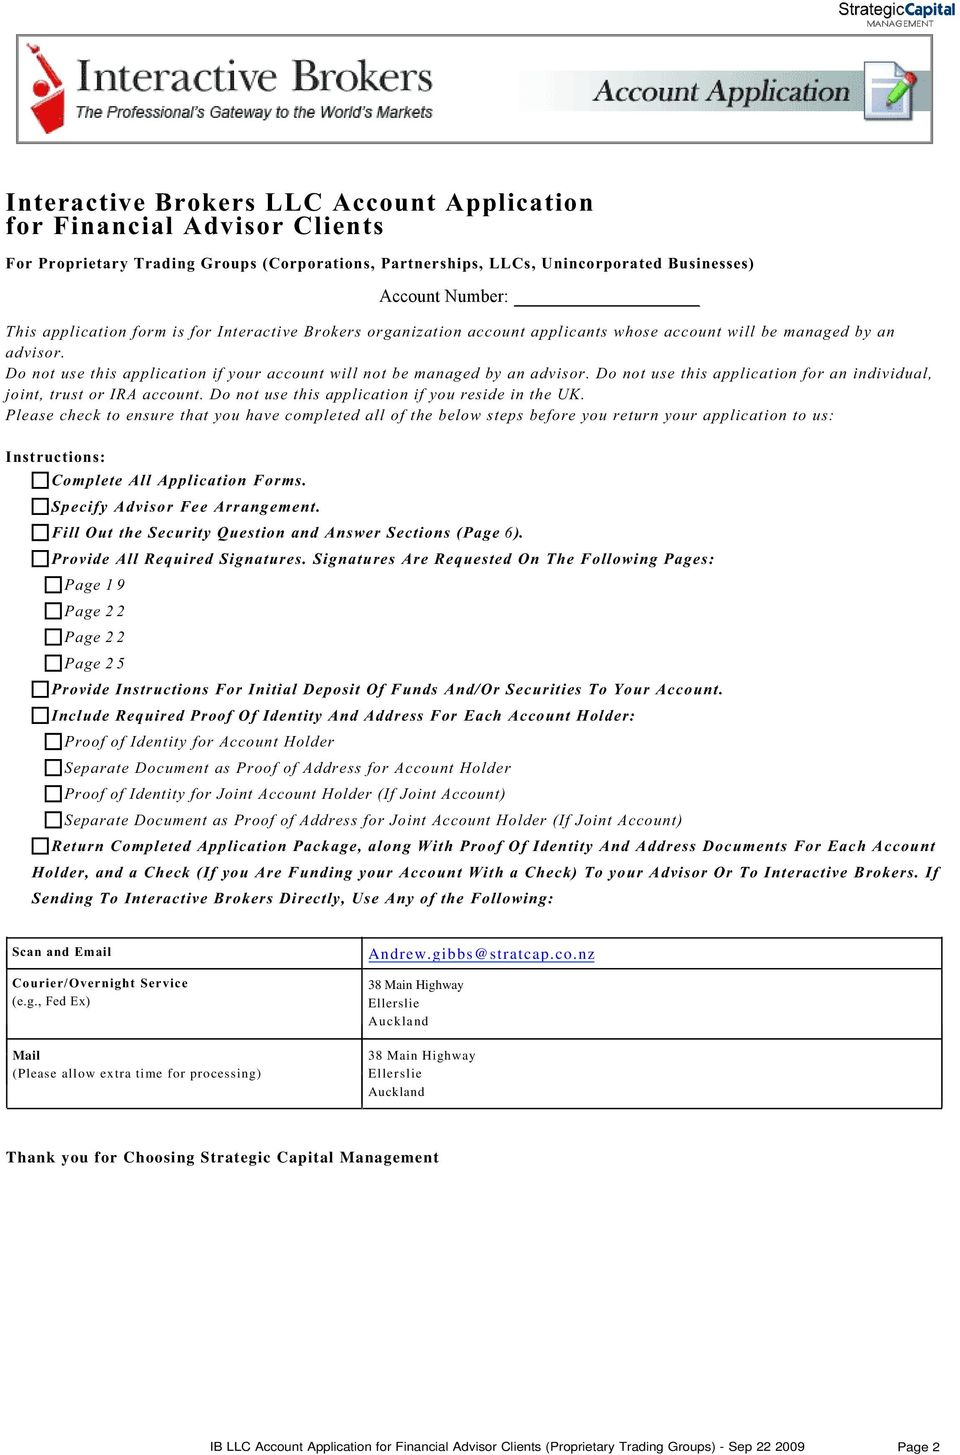 Account Opening Agreement Introducing Broker Agreement - PDF